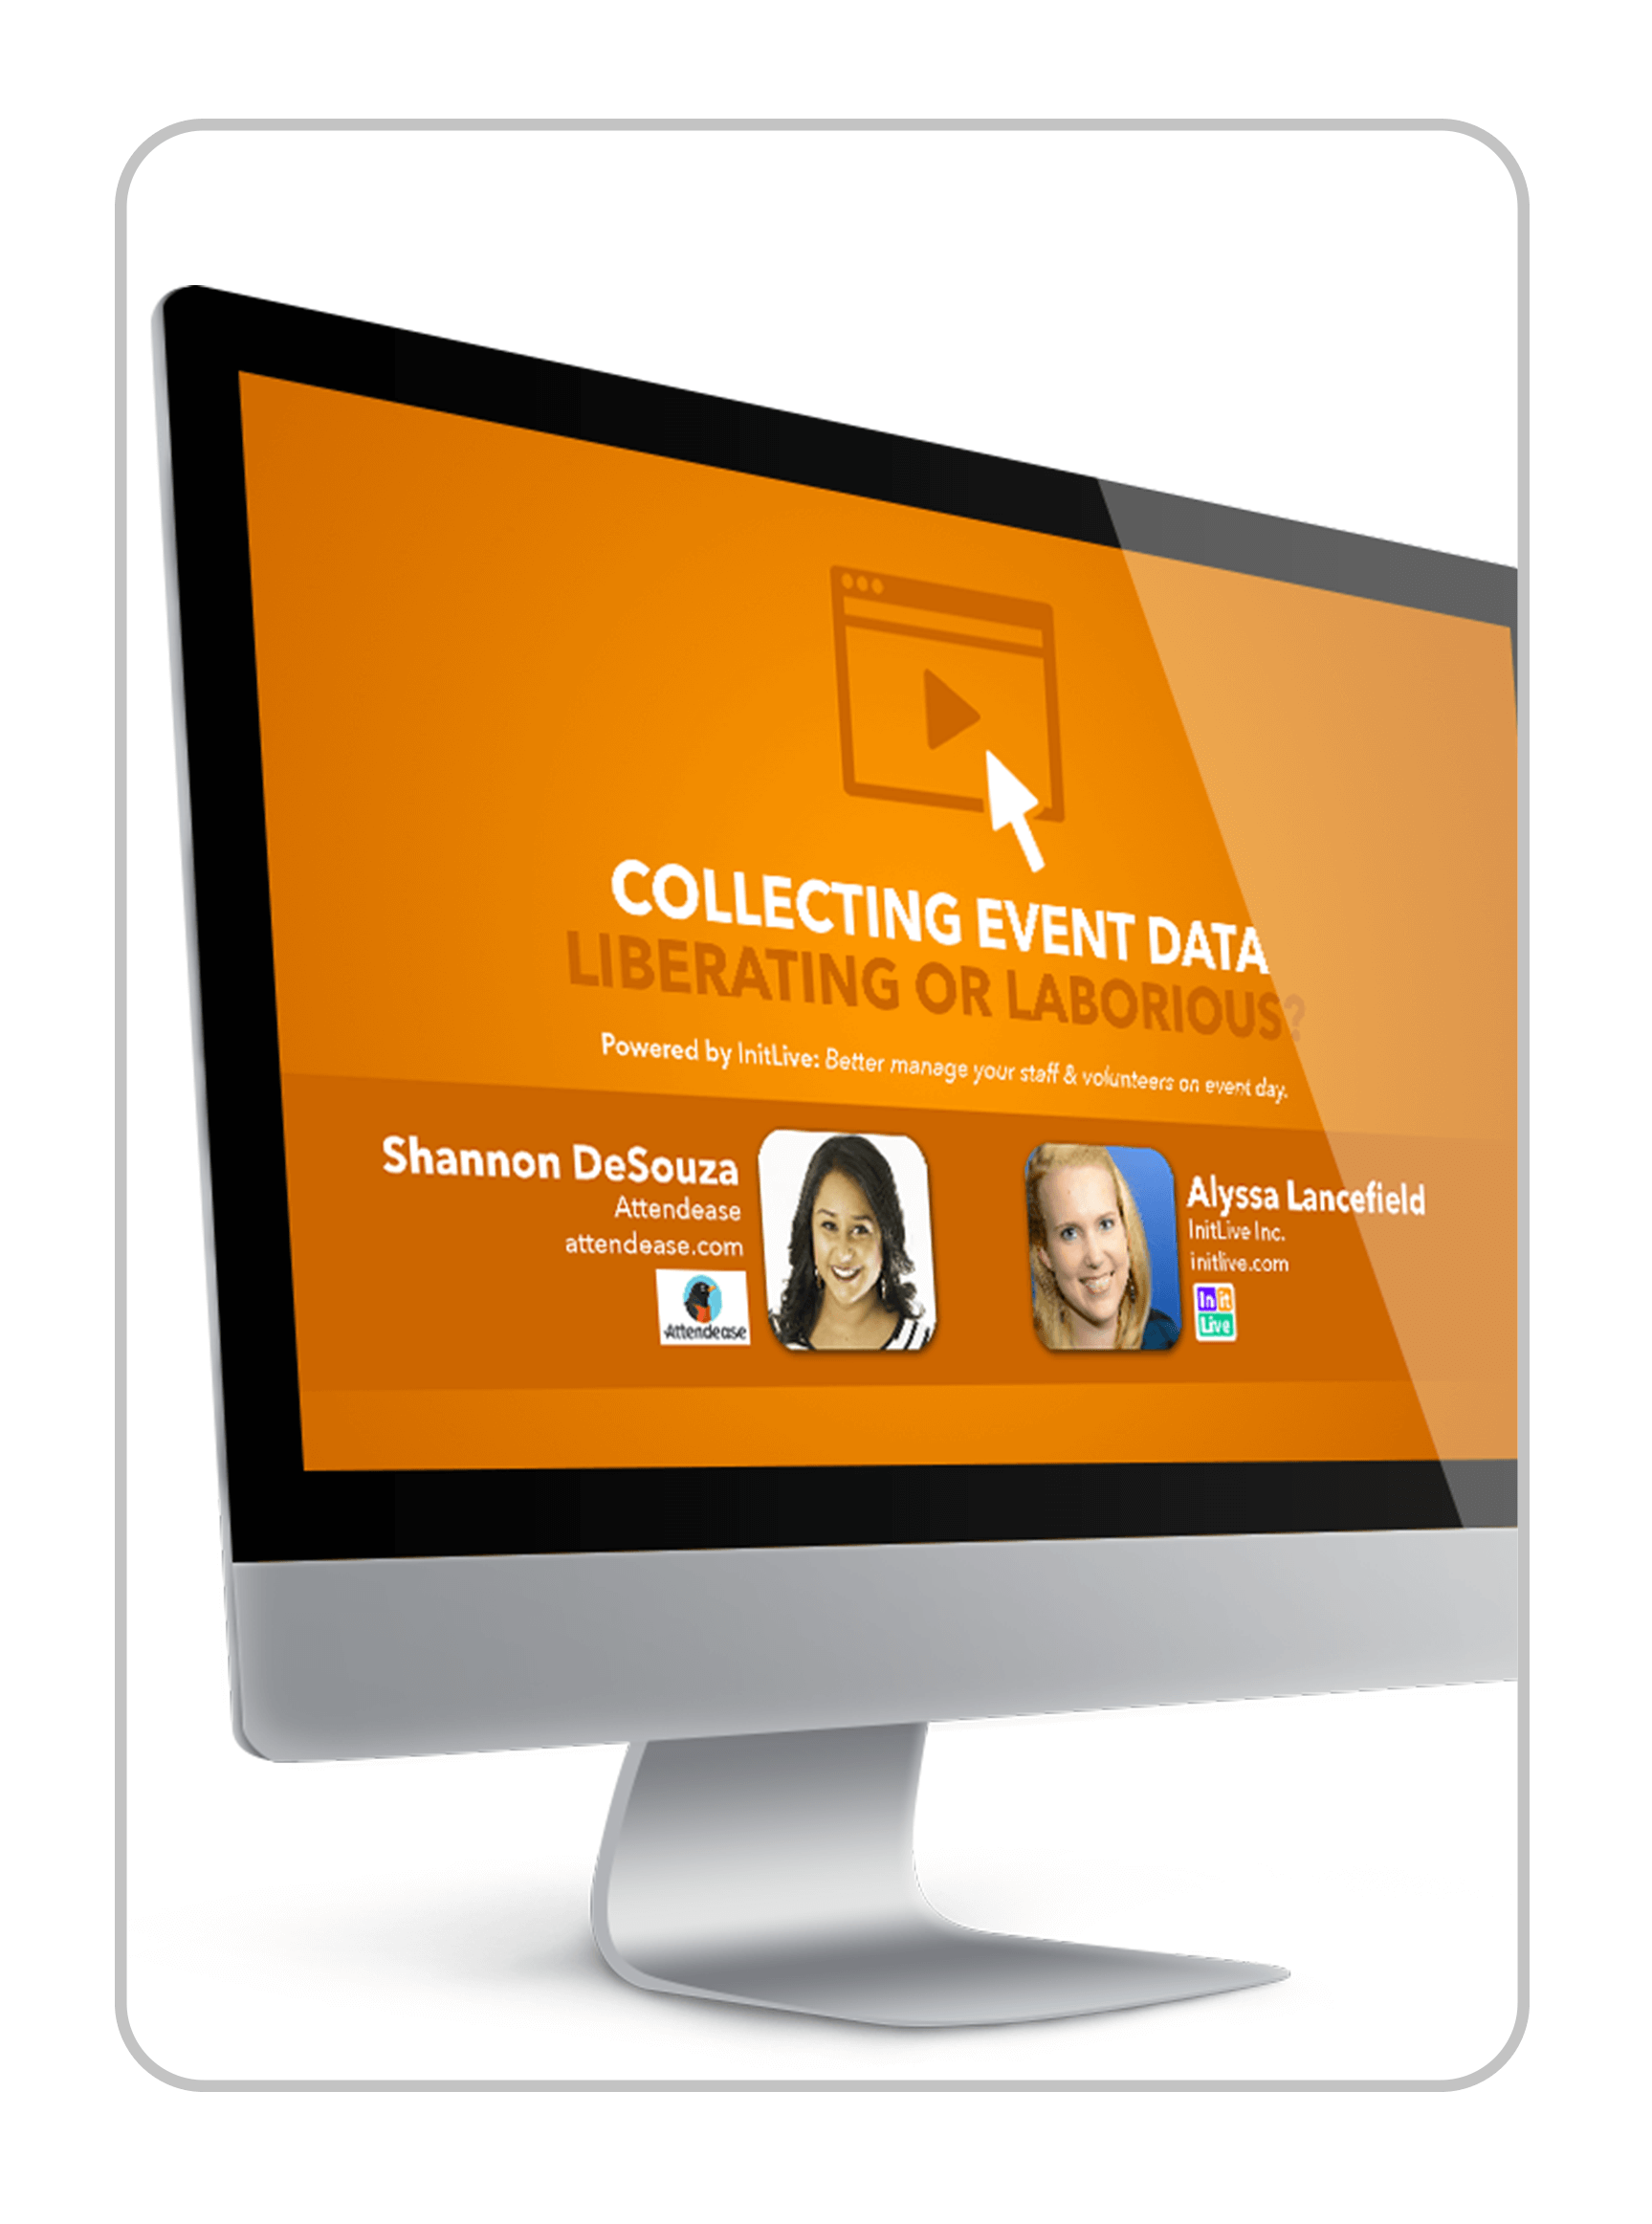 Collecting Event Data: Liberating or Laborious - Podcast